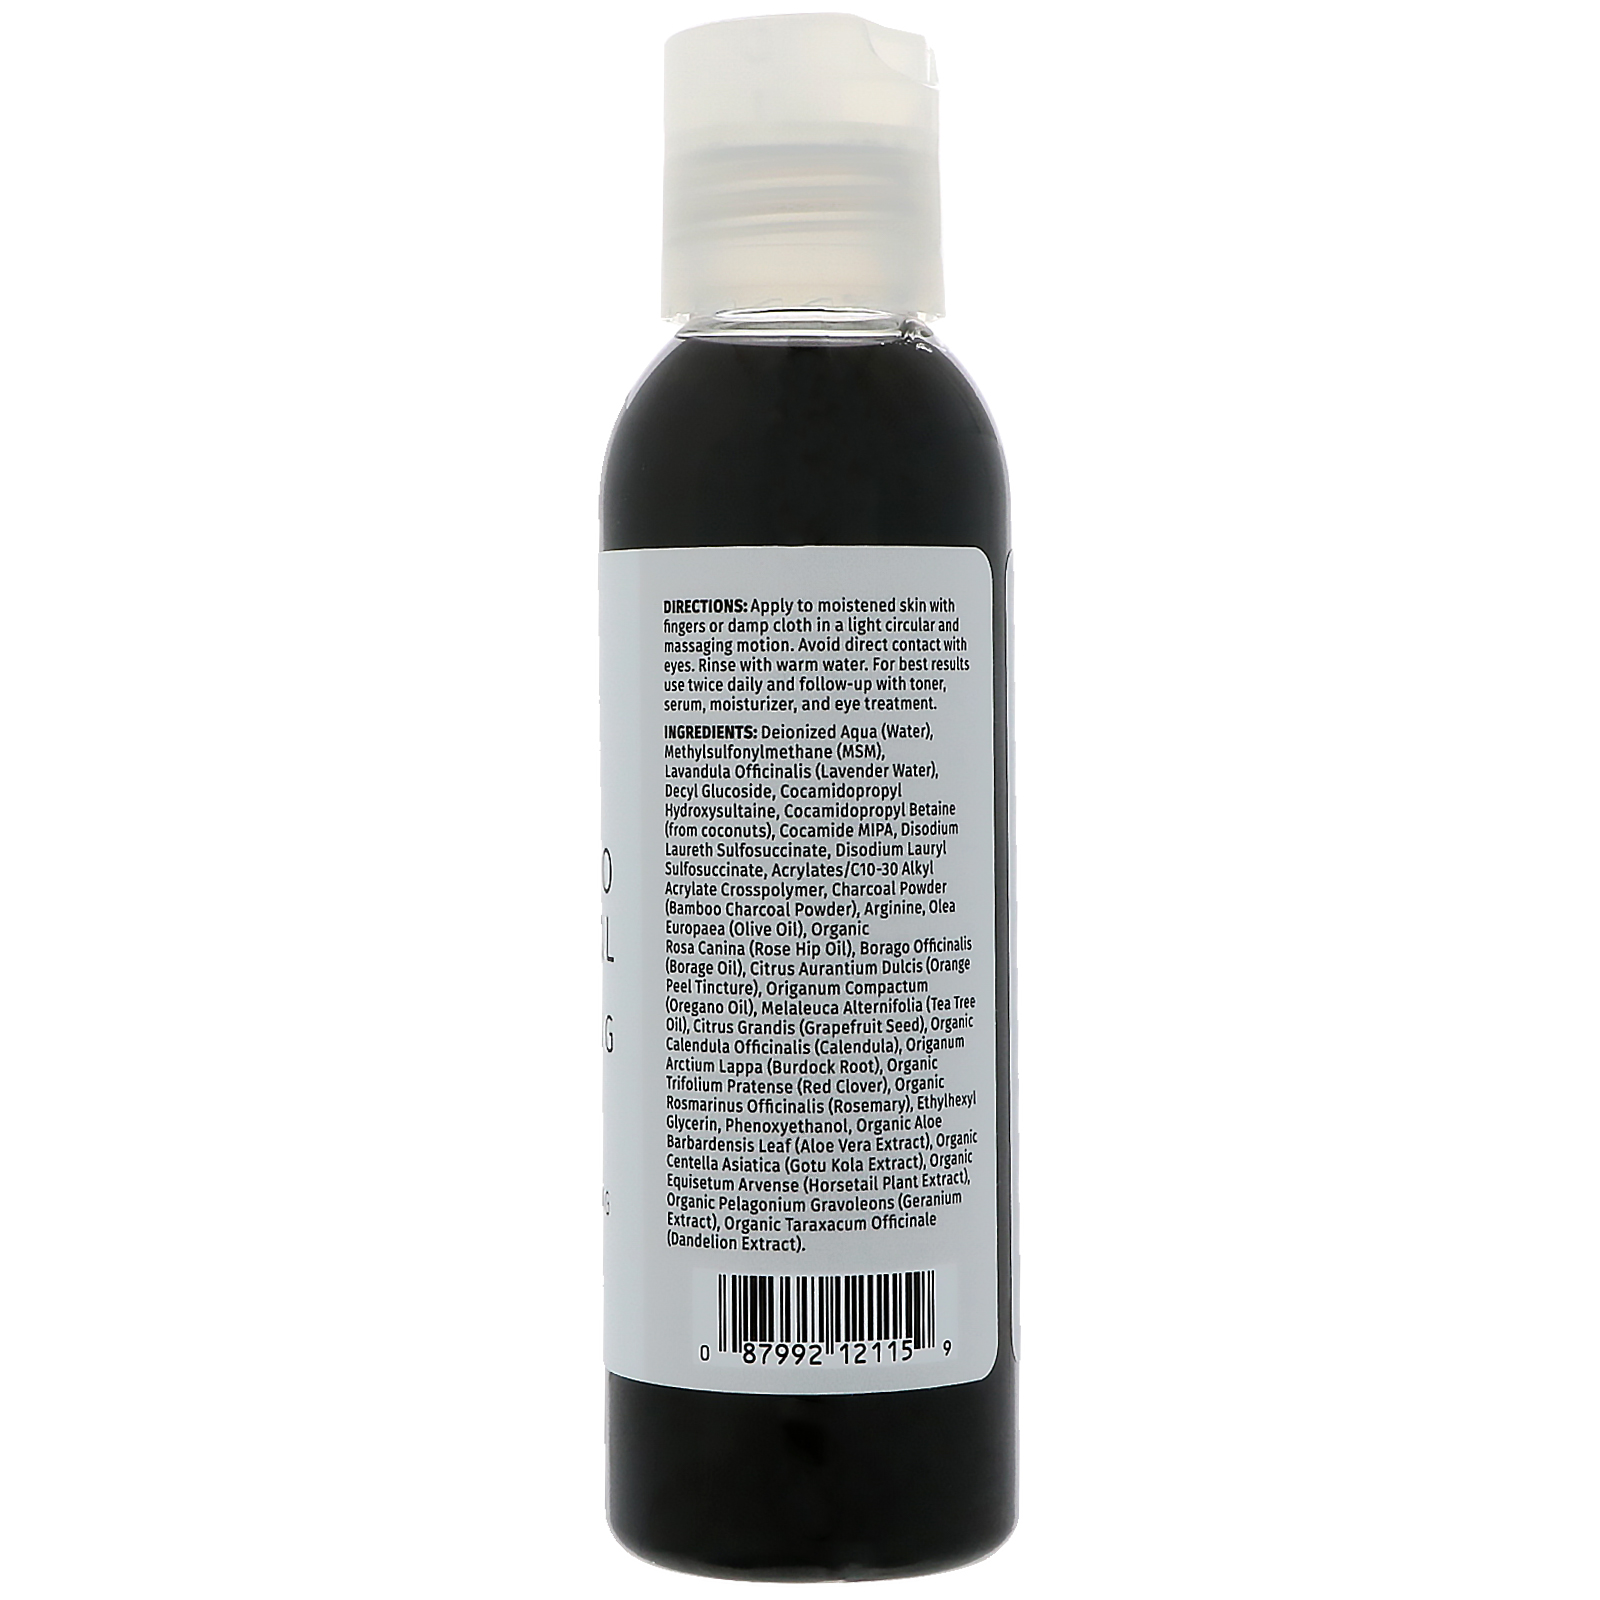 Reviva Labs Bamboo Charcoal Cleansing Gel Pore Minimizing 118ml/4oz - For All Skin Types kNutek The Gift Of Youth Kit